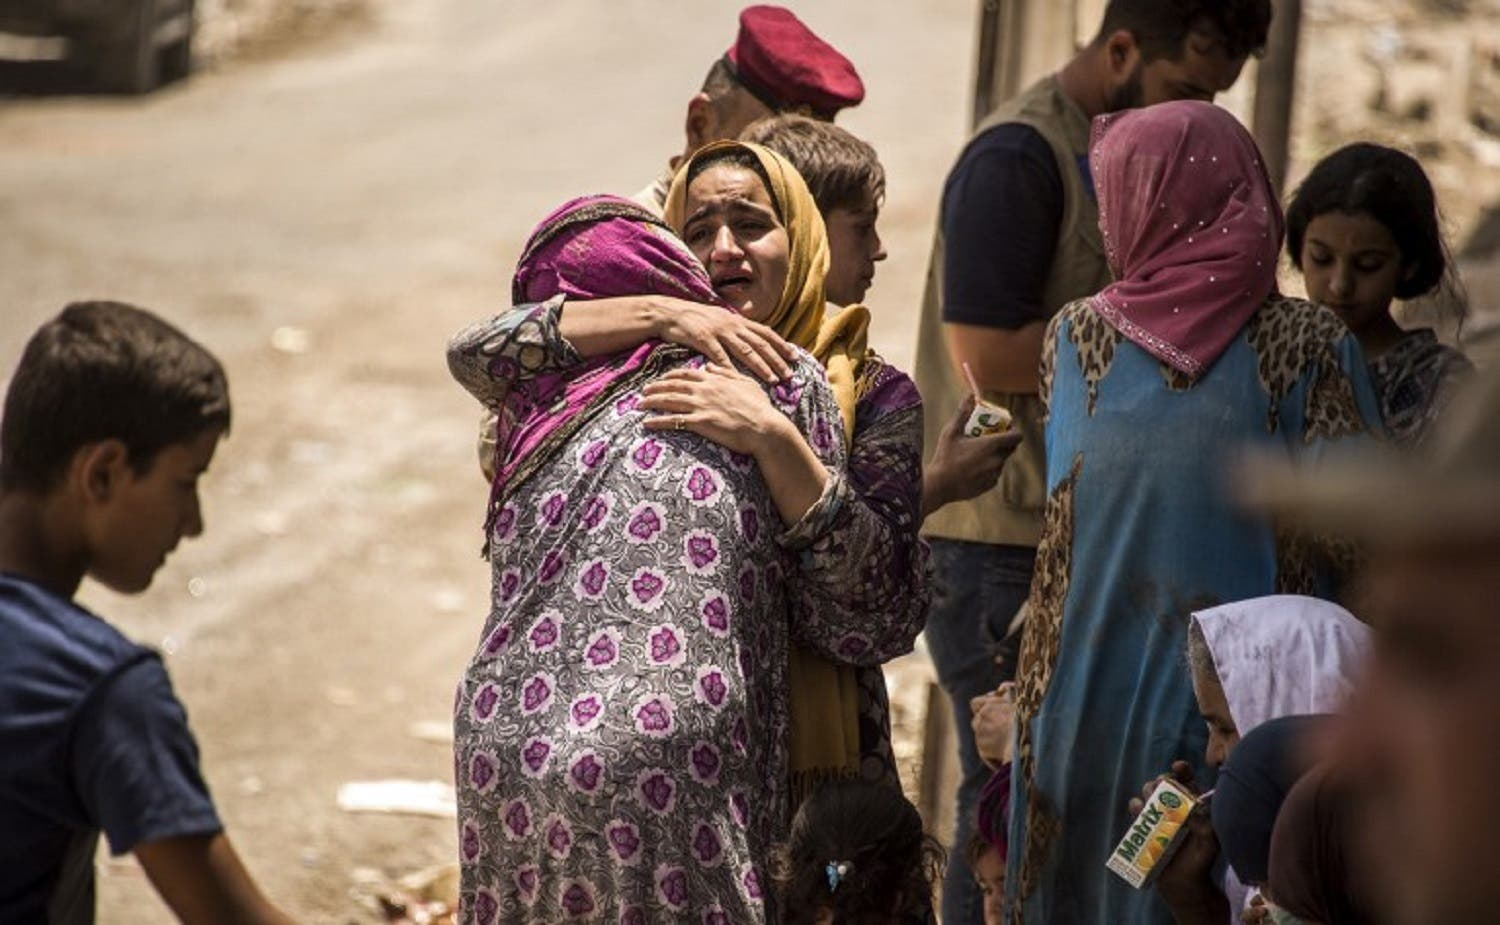 An Iraqi woman, who fled the fighting between government forces and ISIS militants in the Old City of Mosul, reacts while embracing another in the city's western industrial district as they wait to be relocated, on July 8, 2017. (AFP)